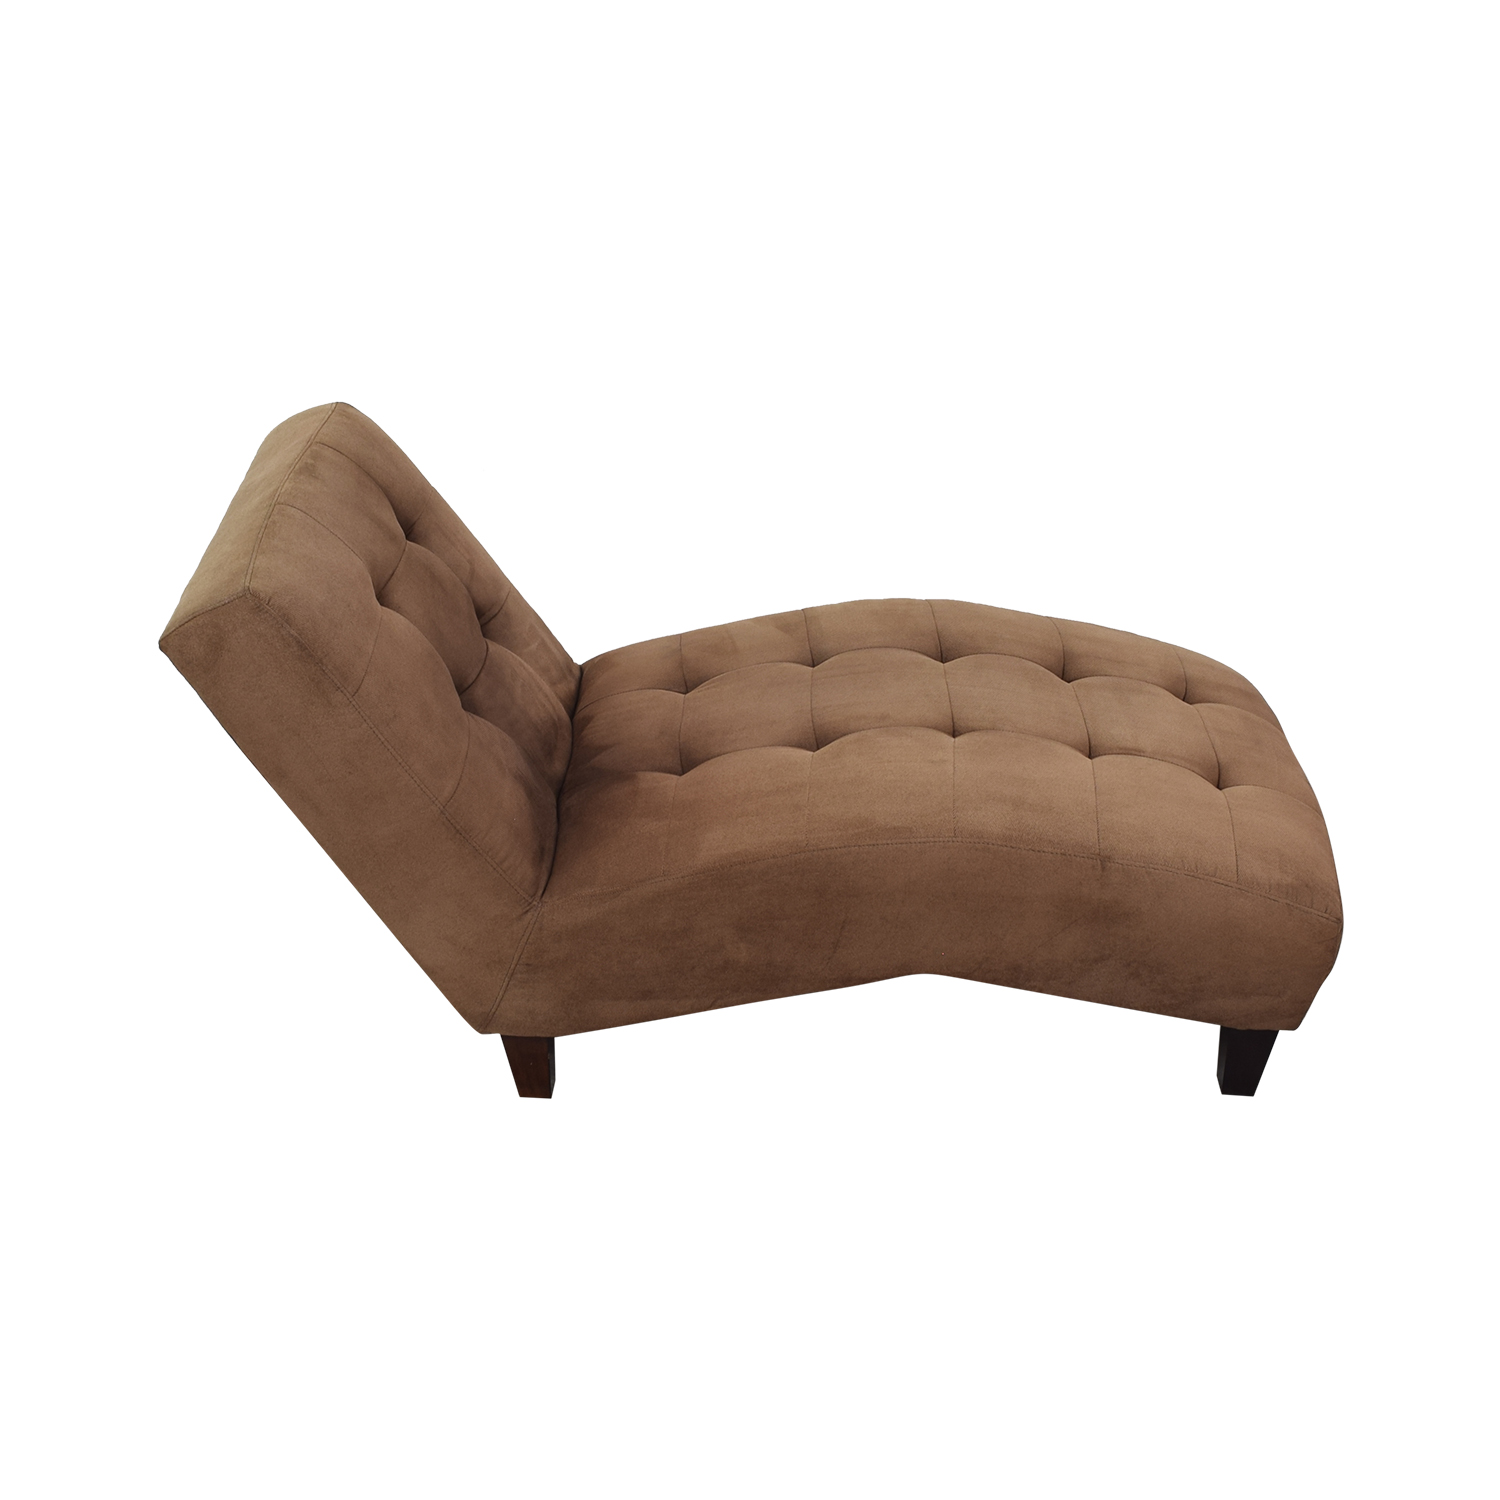 buy Macy's Arched Chaise Lounge Macy's Chaises